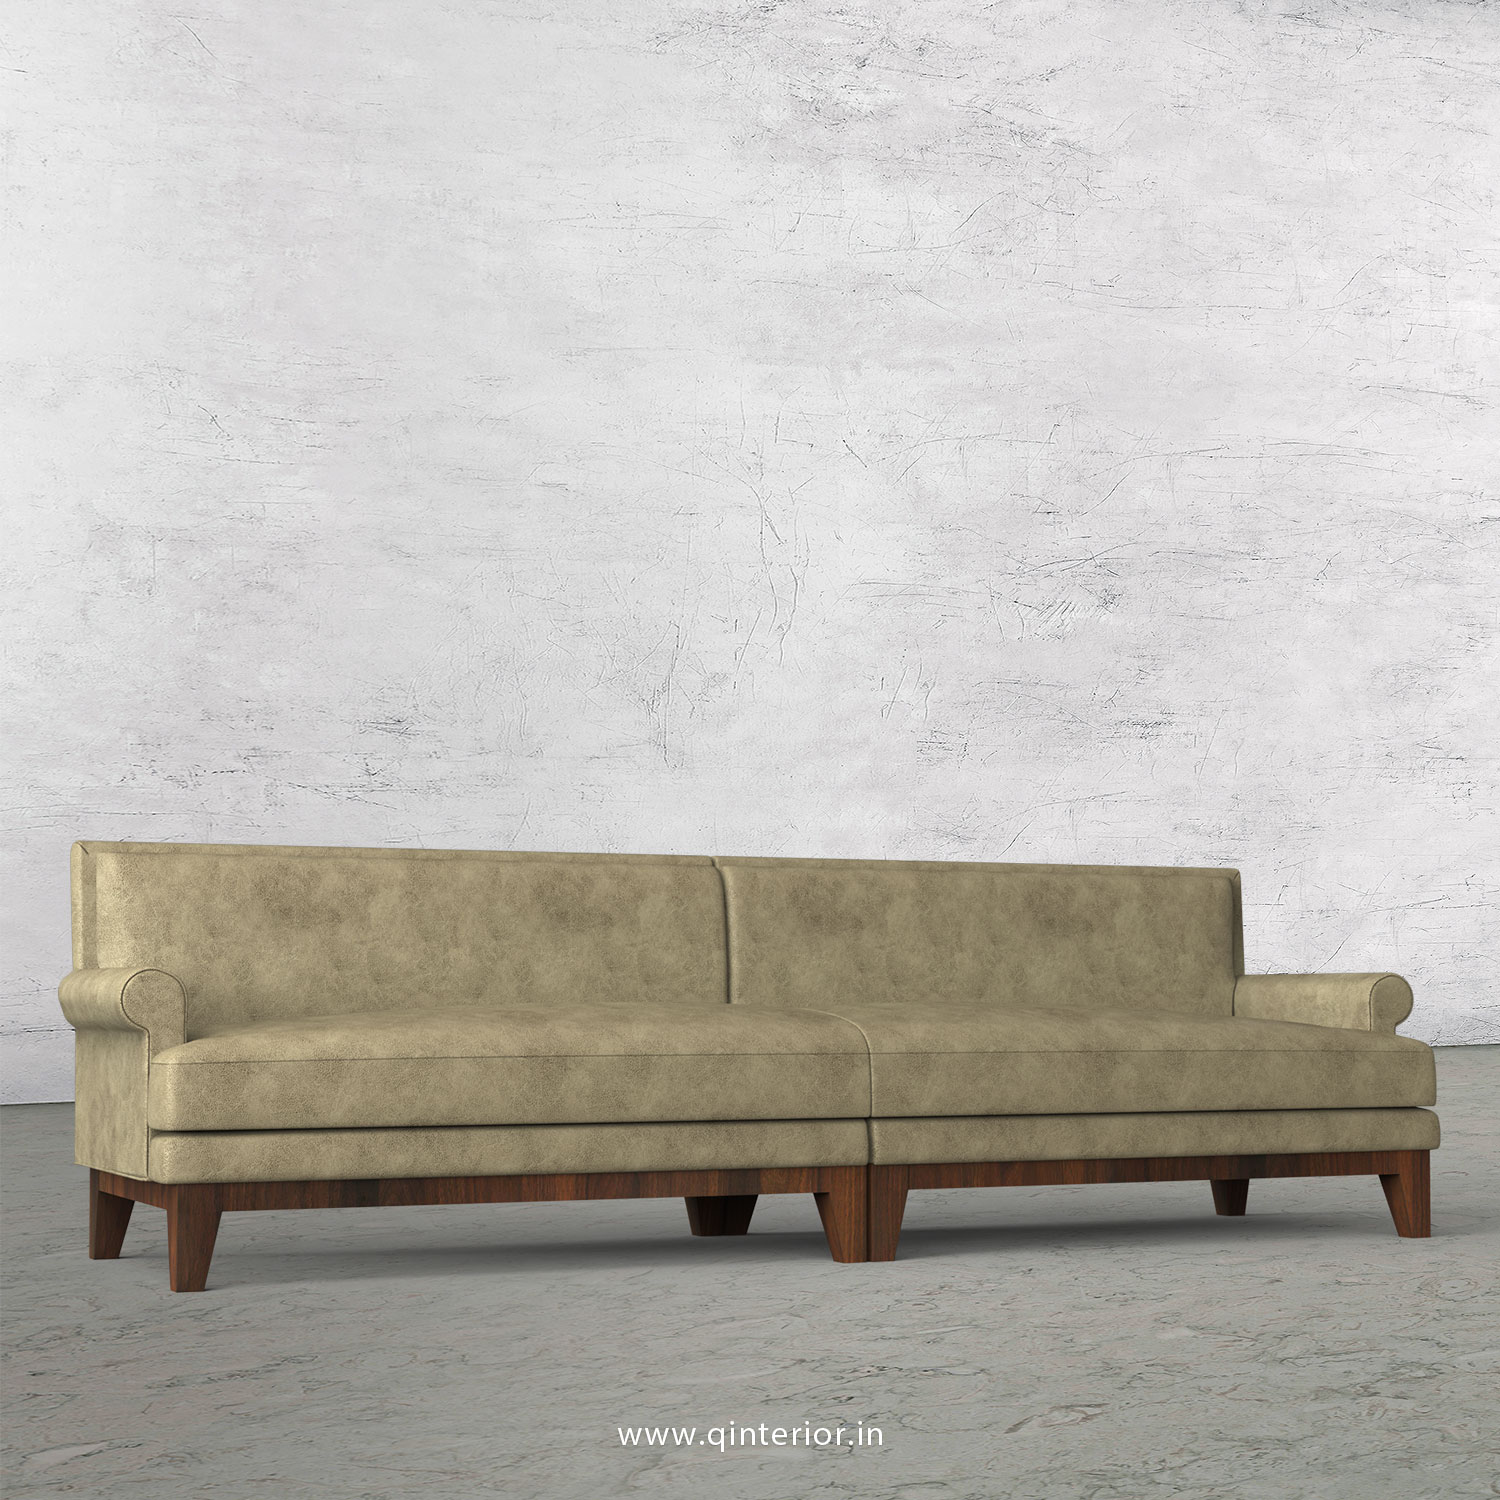 Aviana 4 Seater Sofa in Fab Leather Fabric - SFA001 FL03